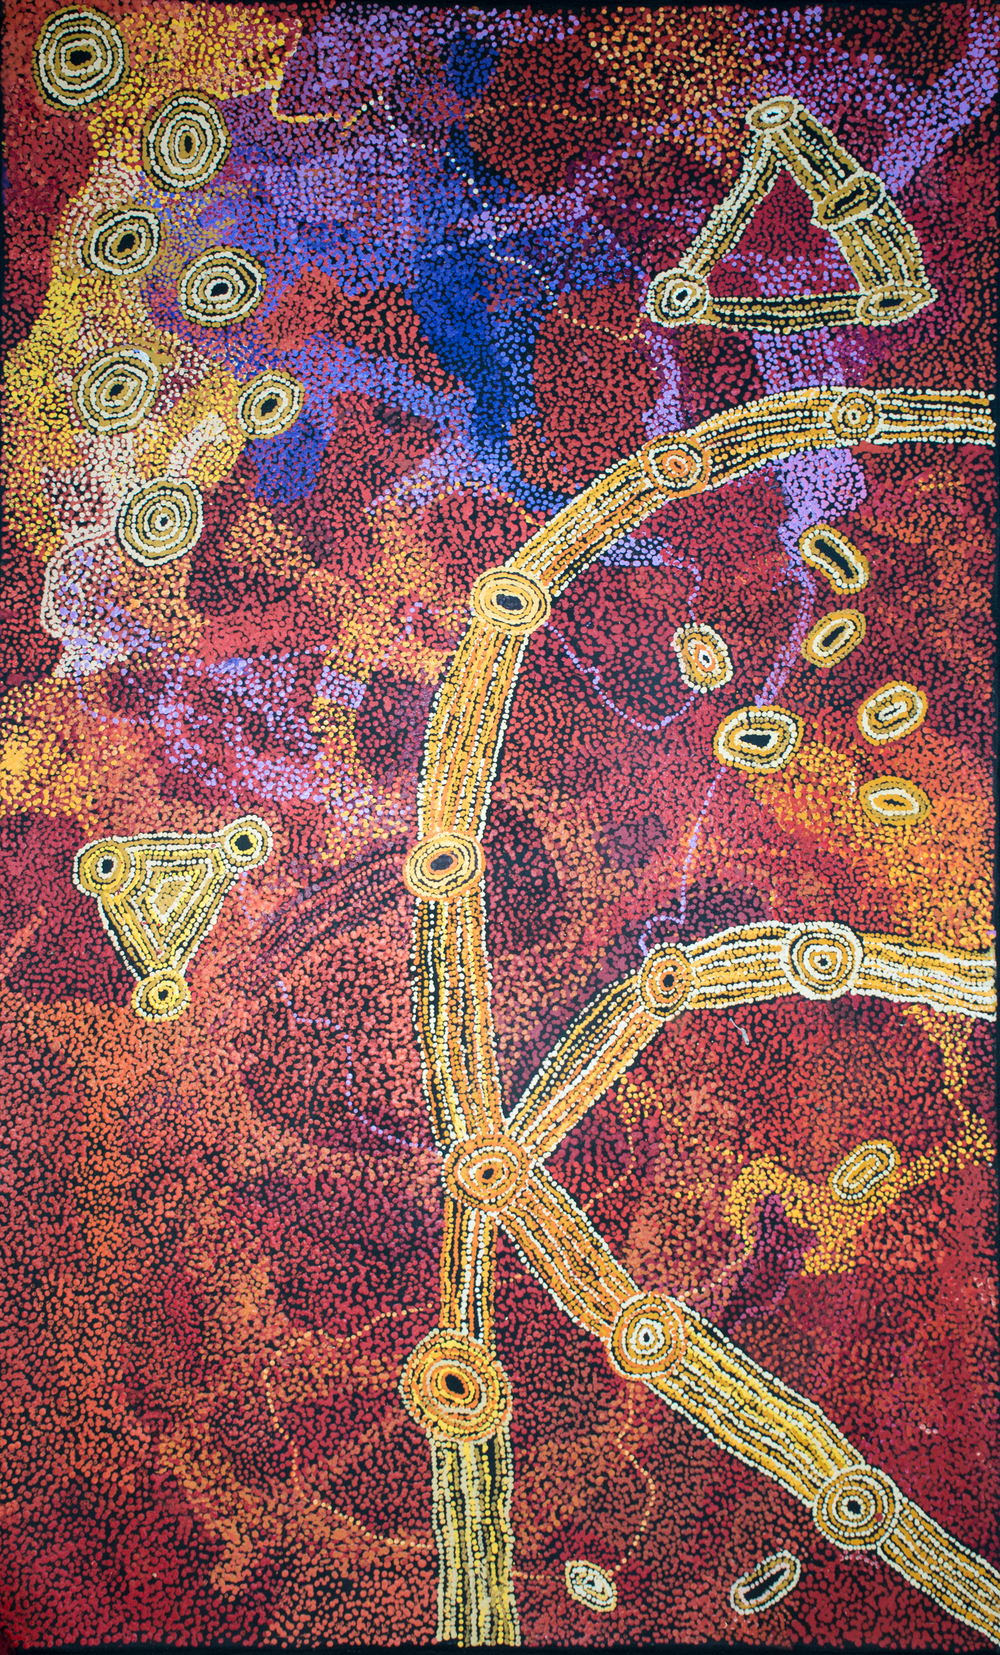 © Photo Aboriginal Signature. Le rêve des sept soeurs par l'artiste Sylvia Ken du centre d'art de Tjala. With the courtesy of the artist and Tjala arts.